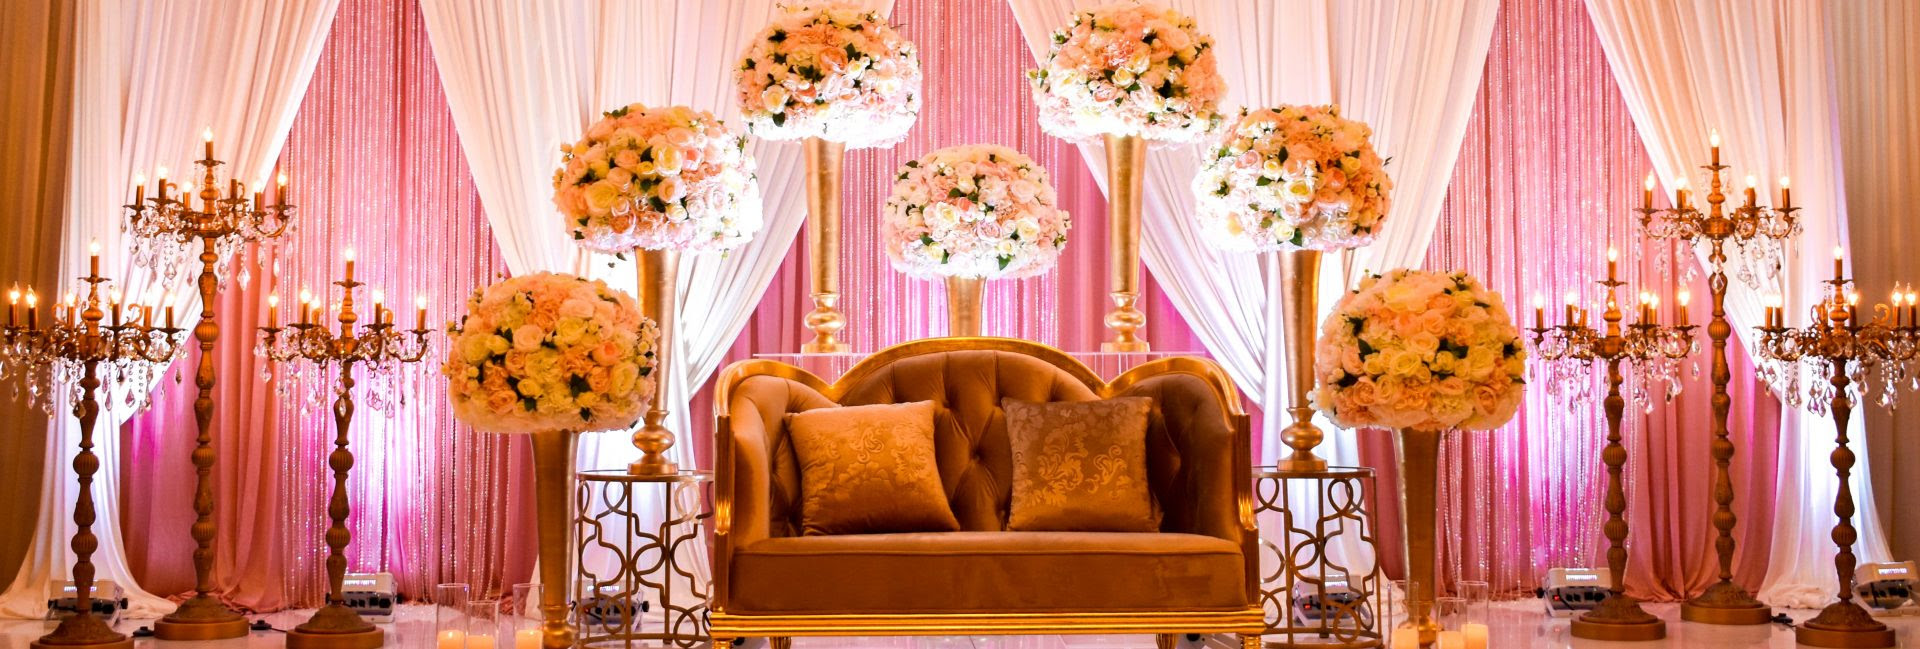 Wallpaper Daily Post Indian Wedding Decorations